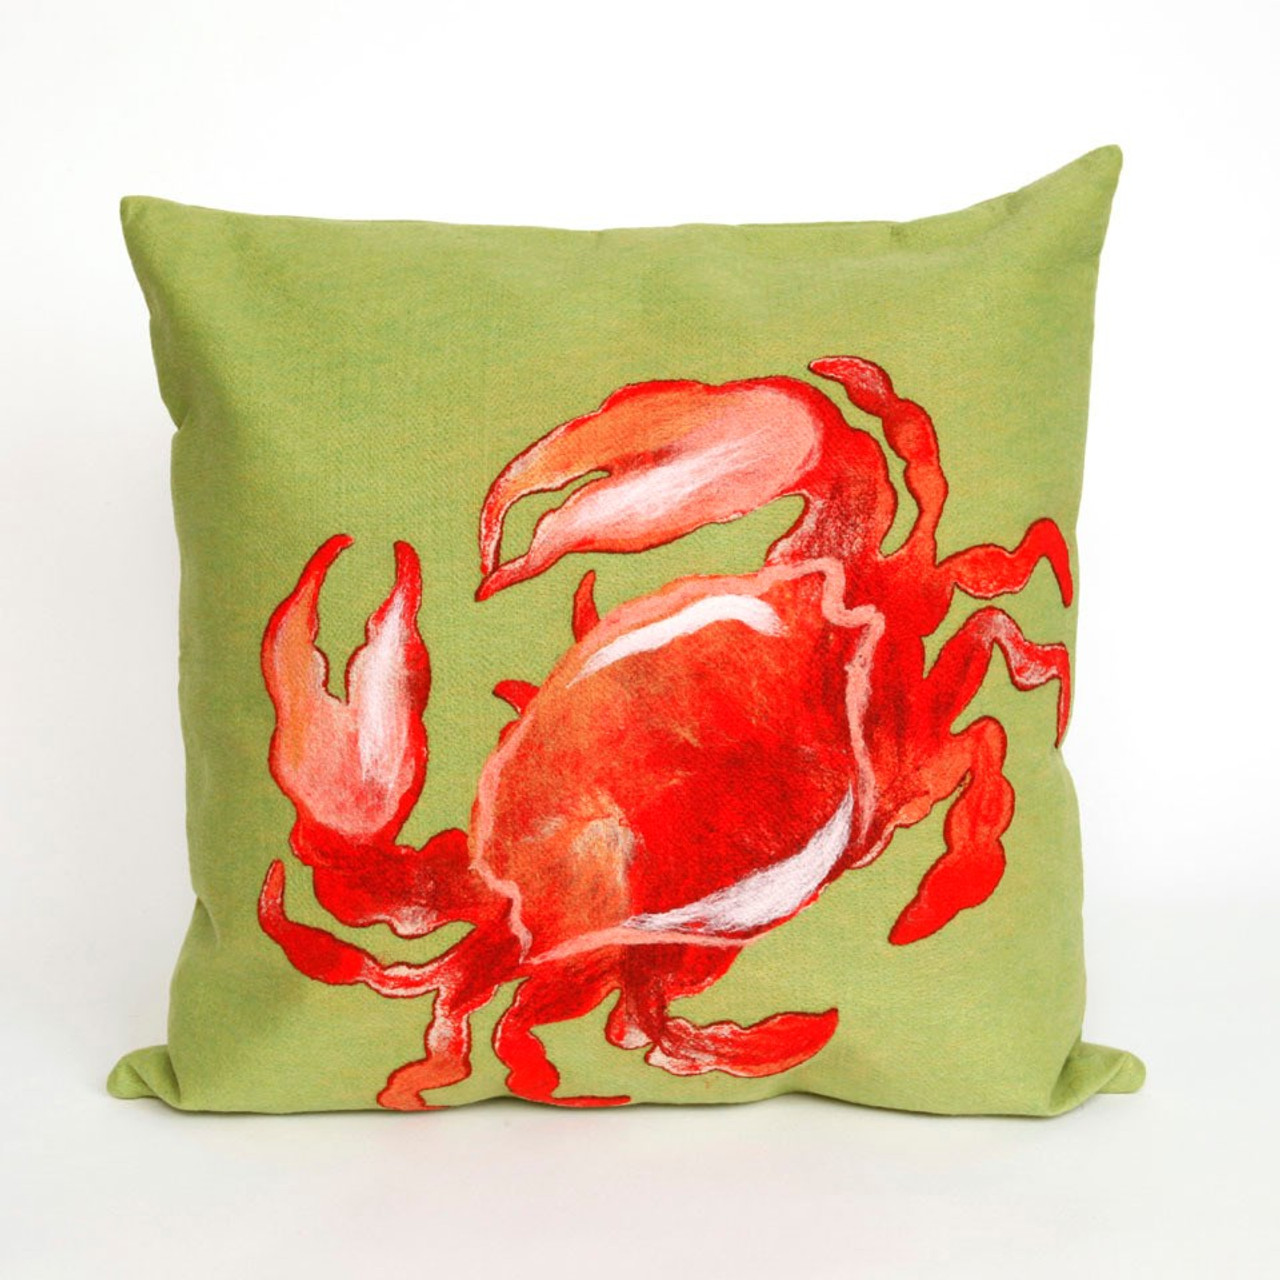 Visions II Red Crab Indoor/Outdoor Throw Pillows - 2 Sizes Avail